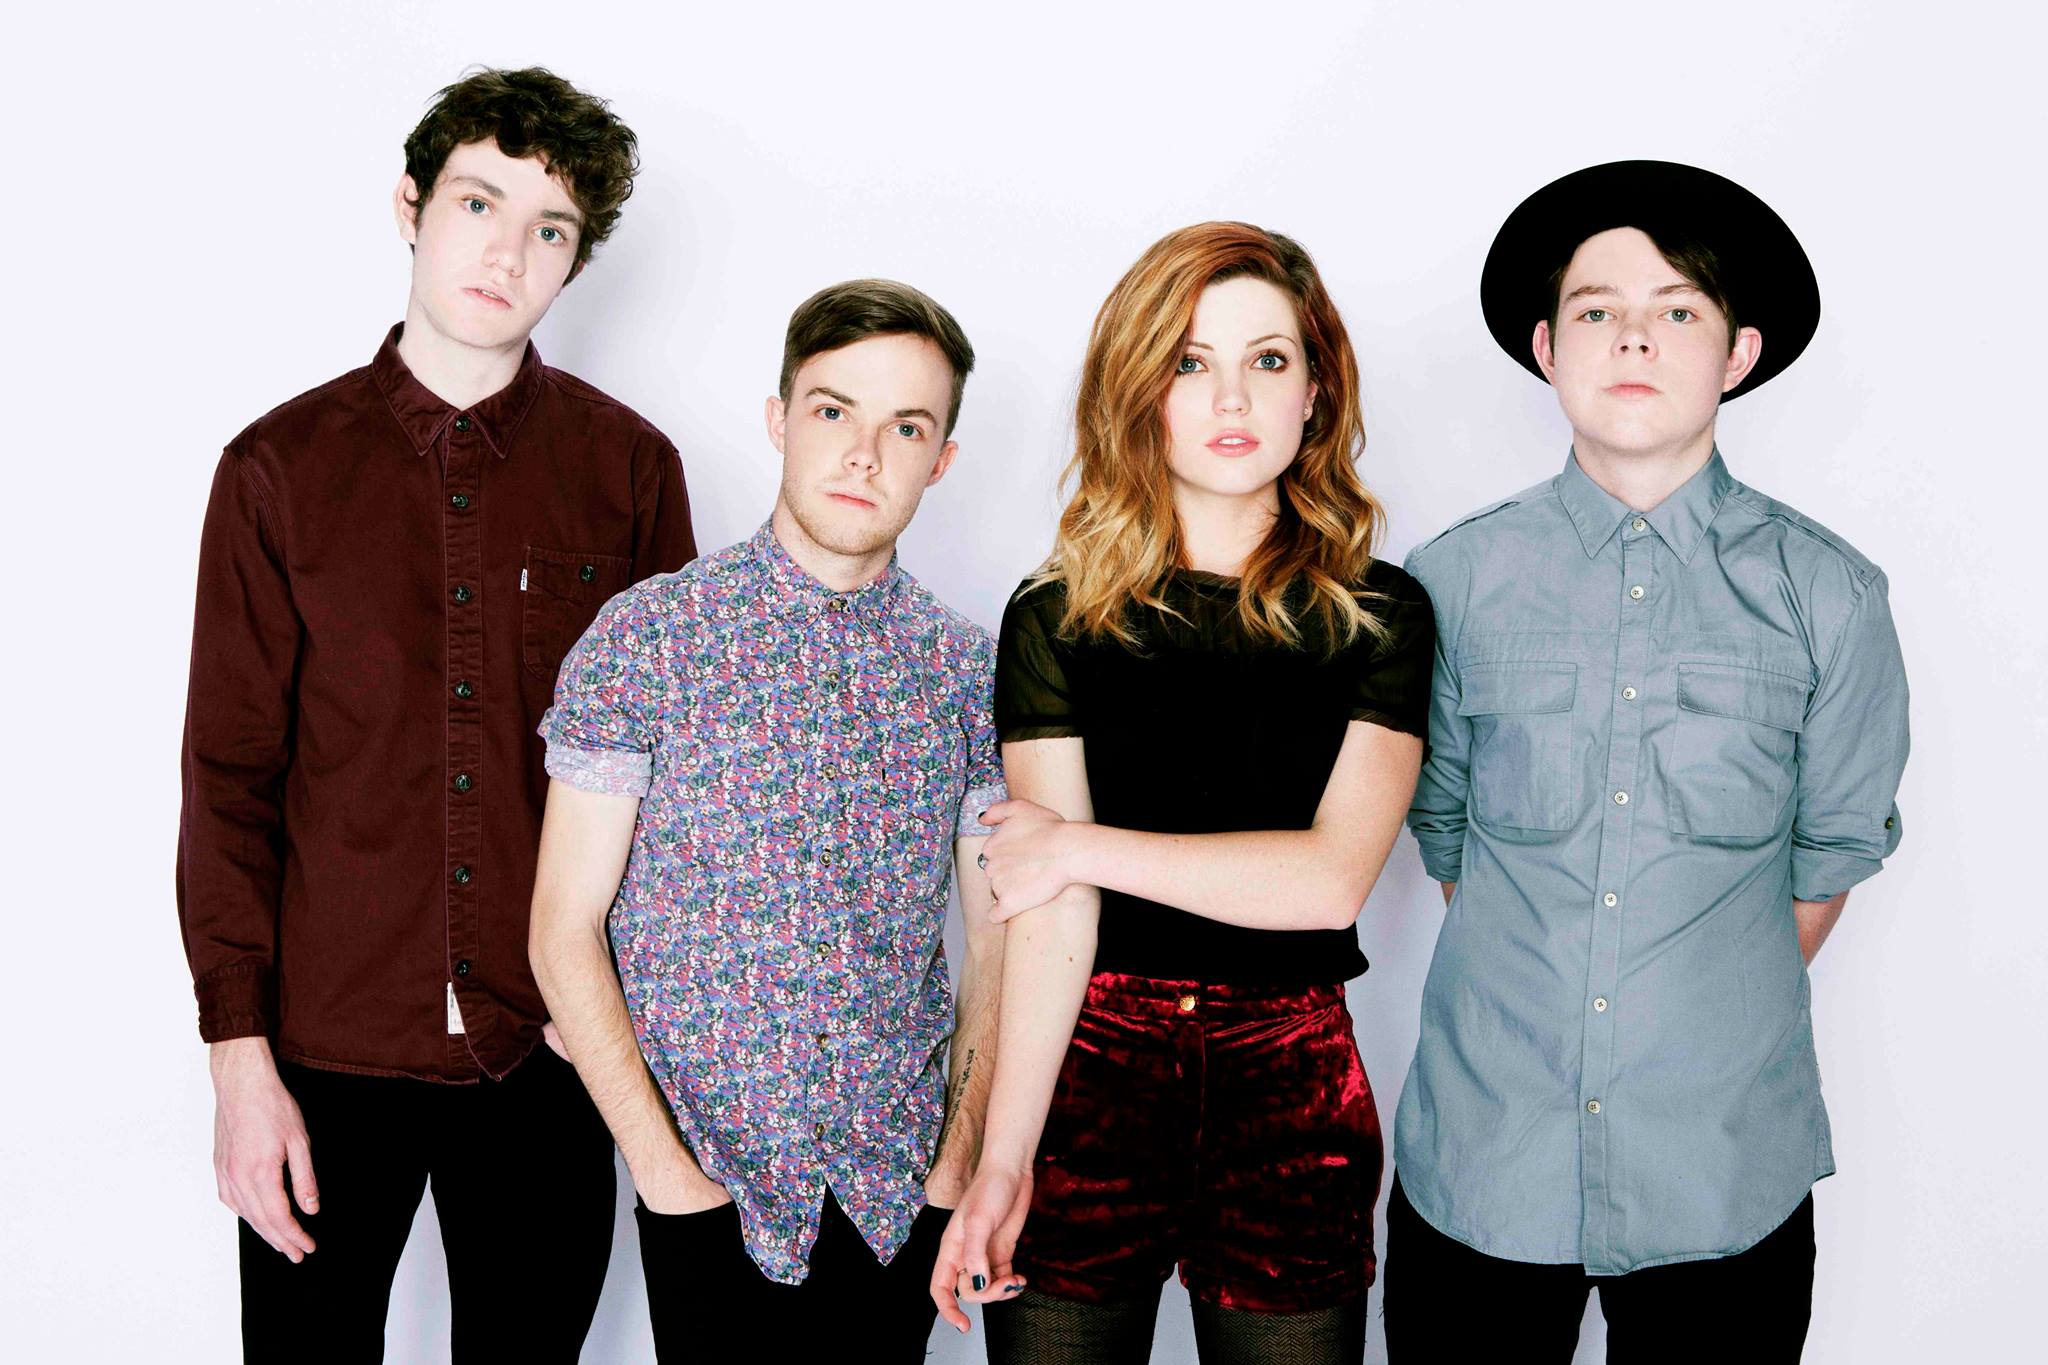 Cute Pitchfork Wallpaper Echosmith Becoming The Cool Kids Onstage Magazine Com